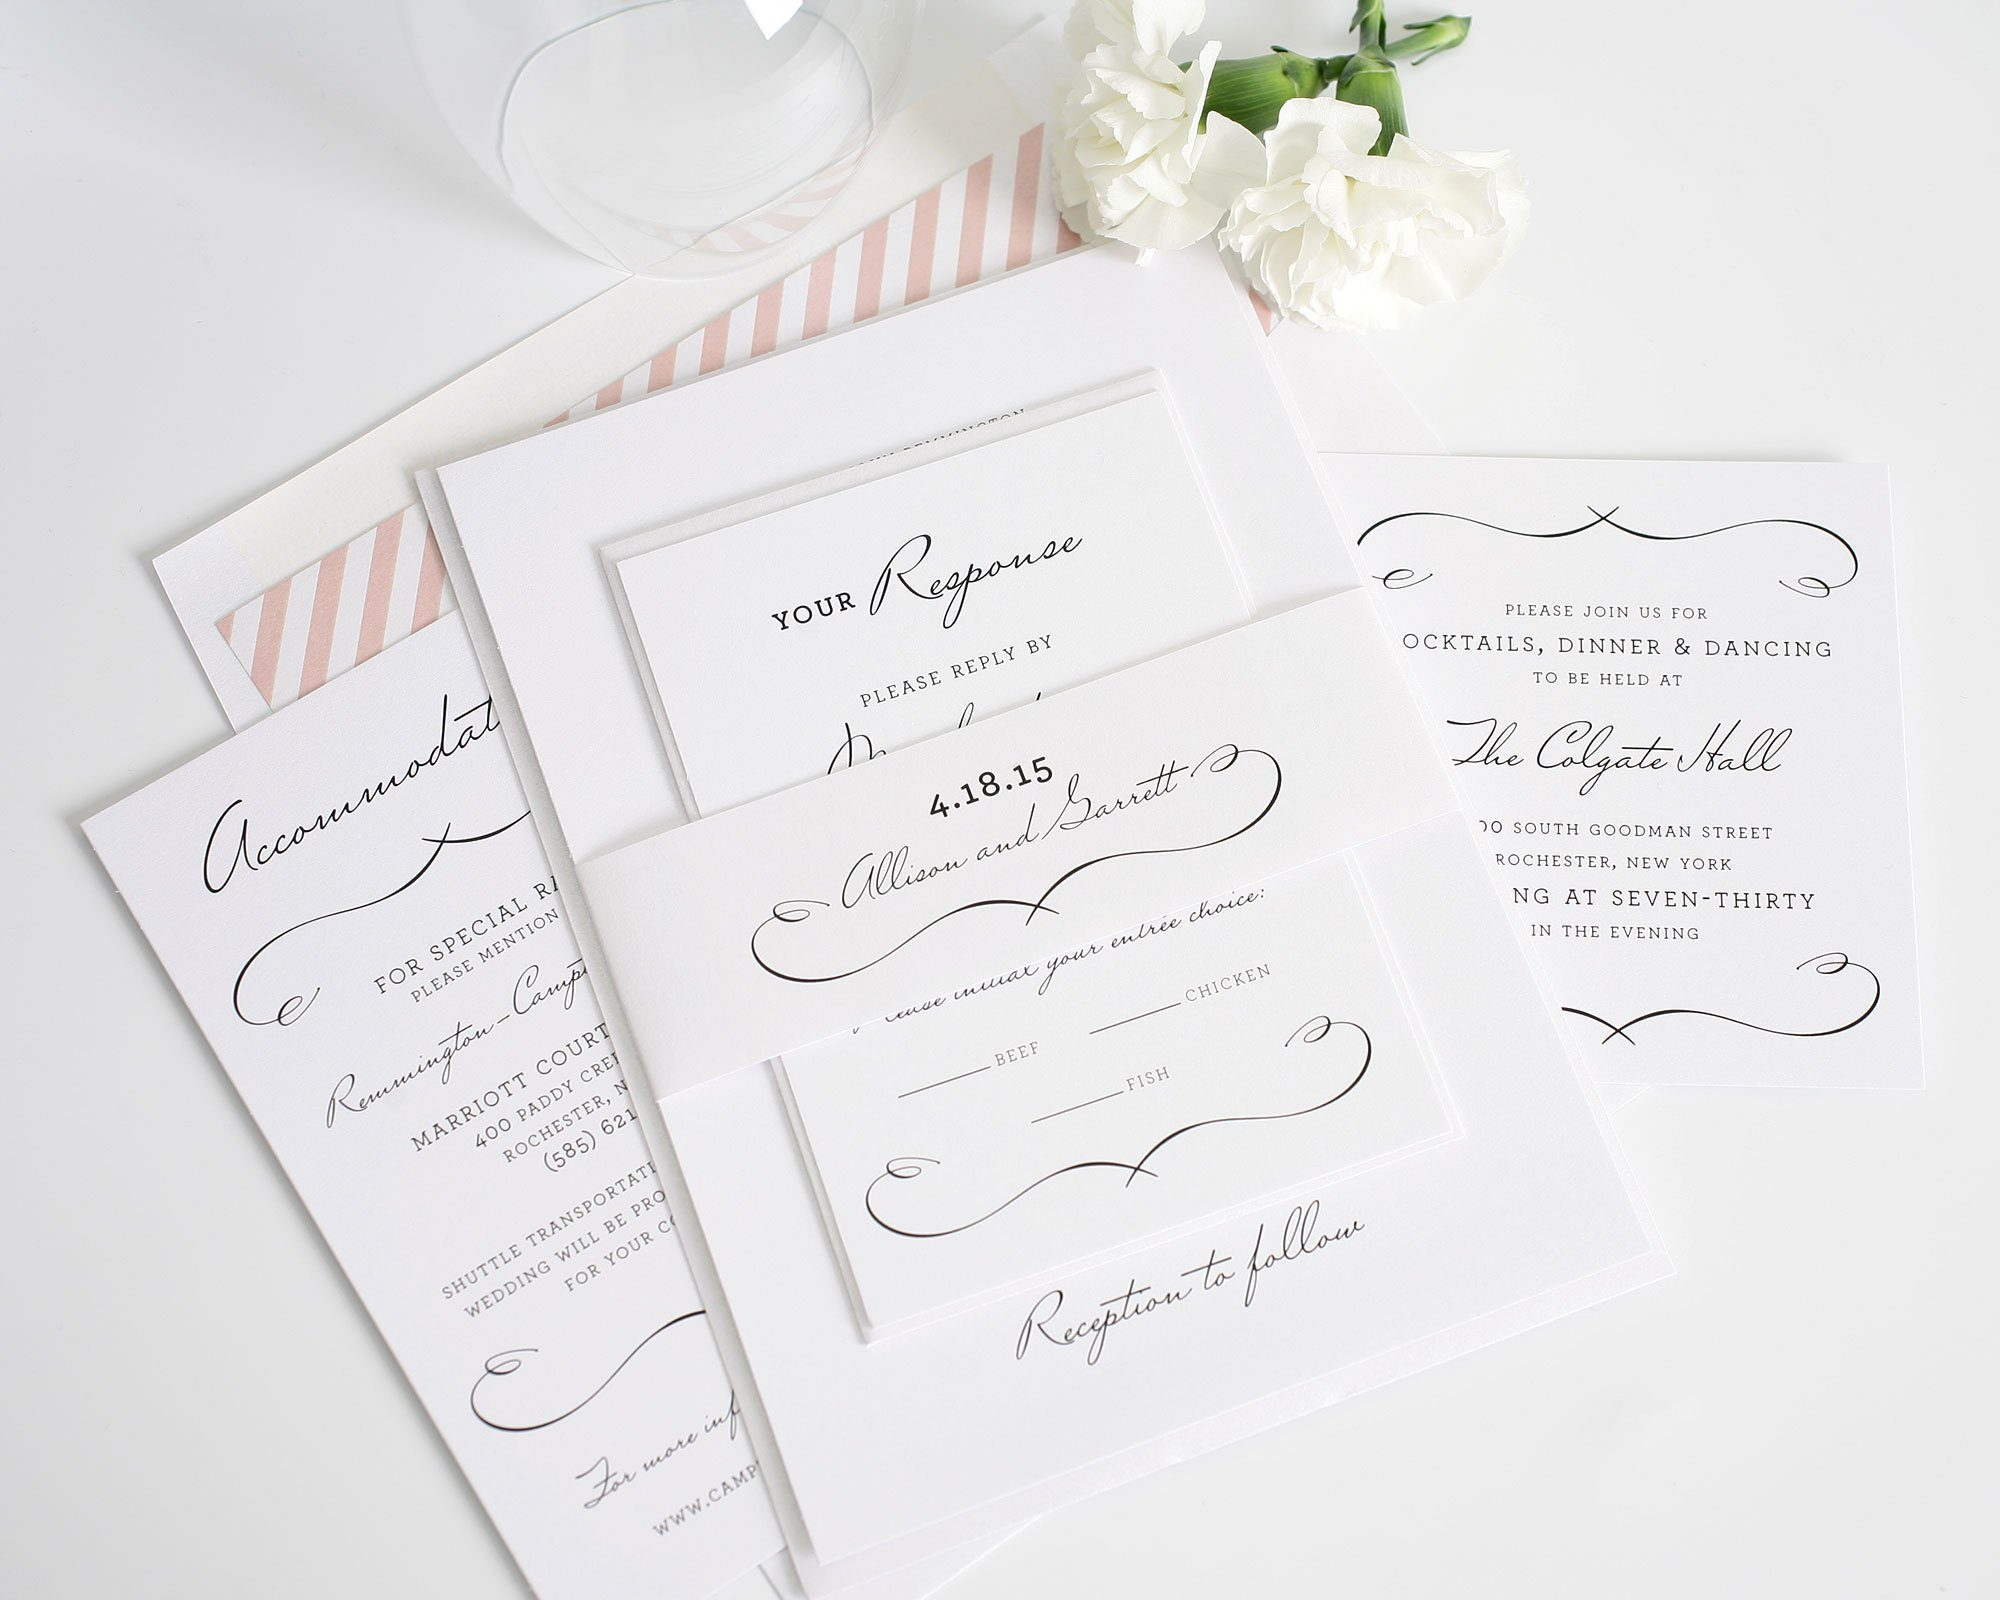 Blush Chic Wedding Invitations With Stripes